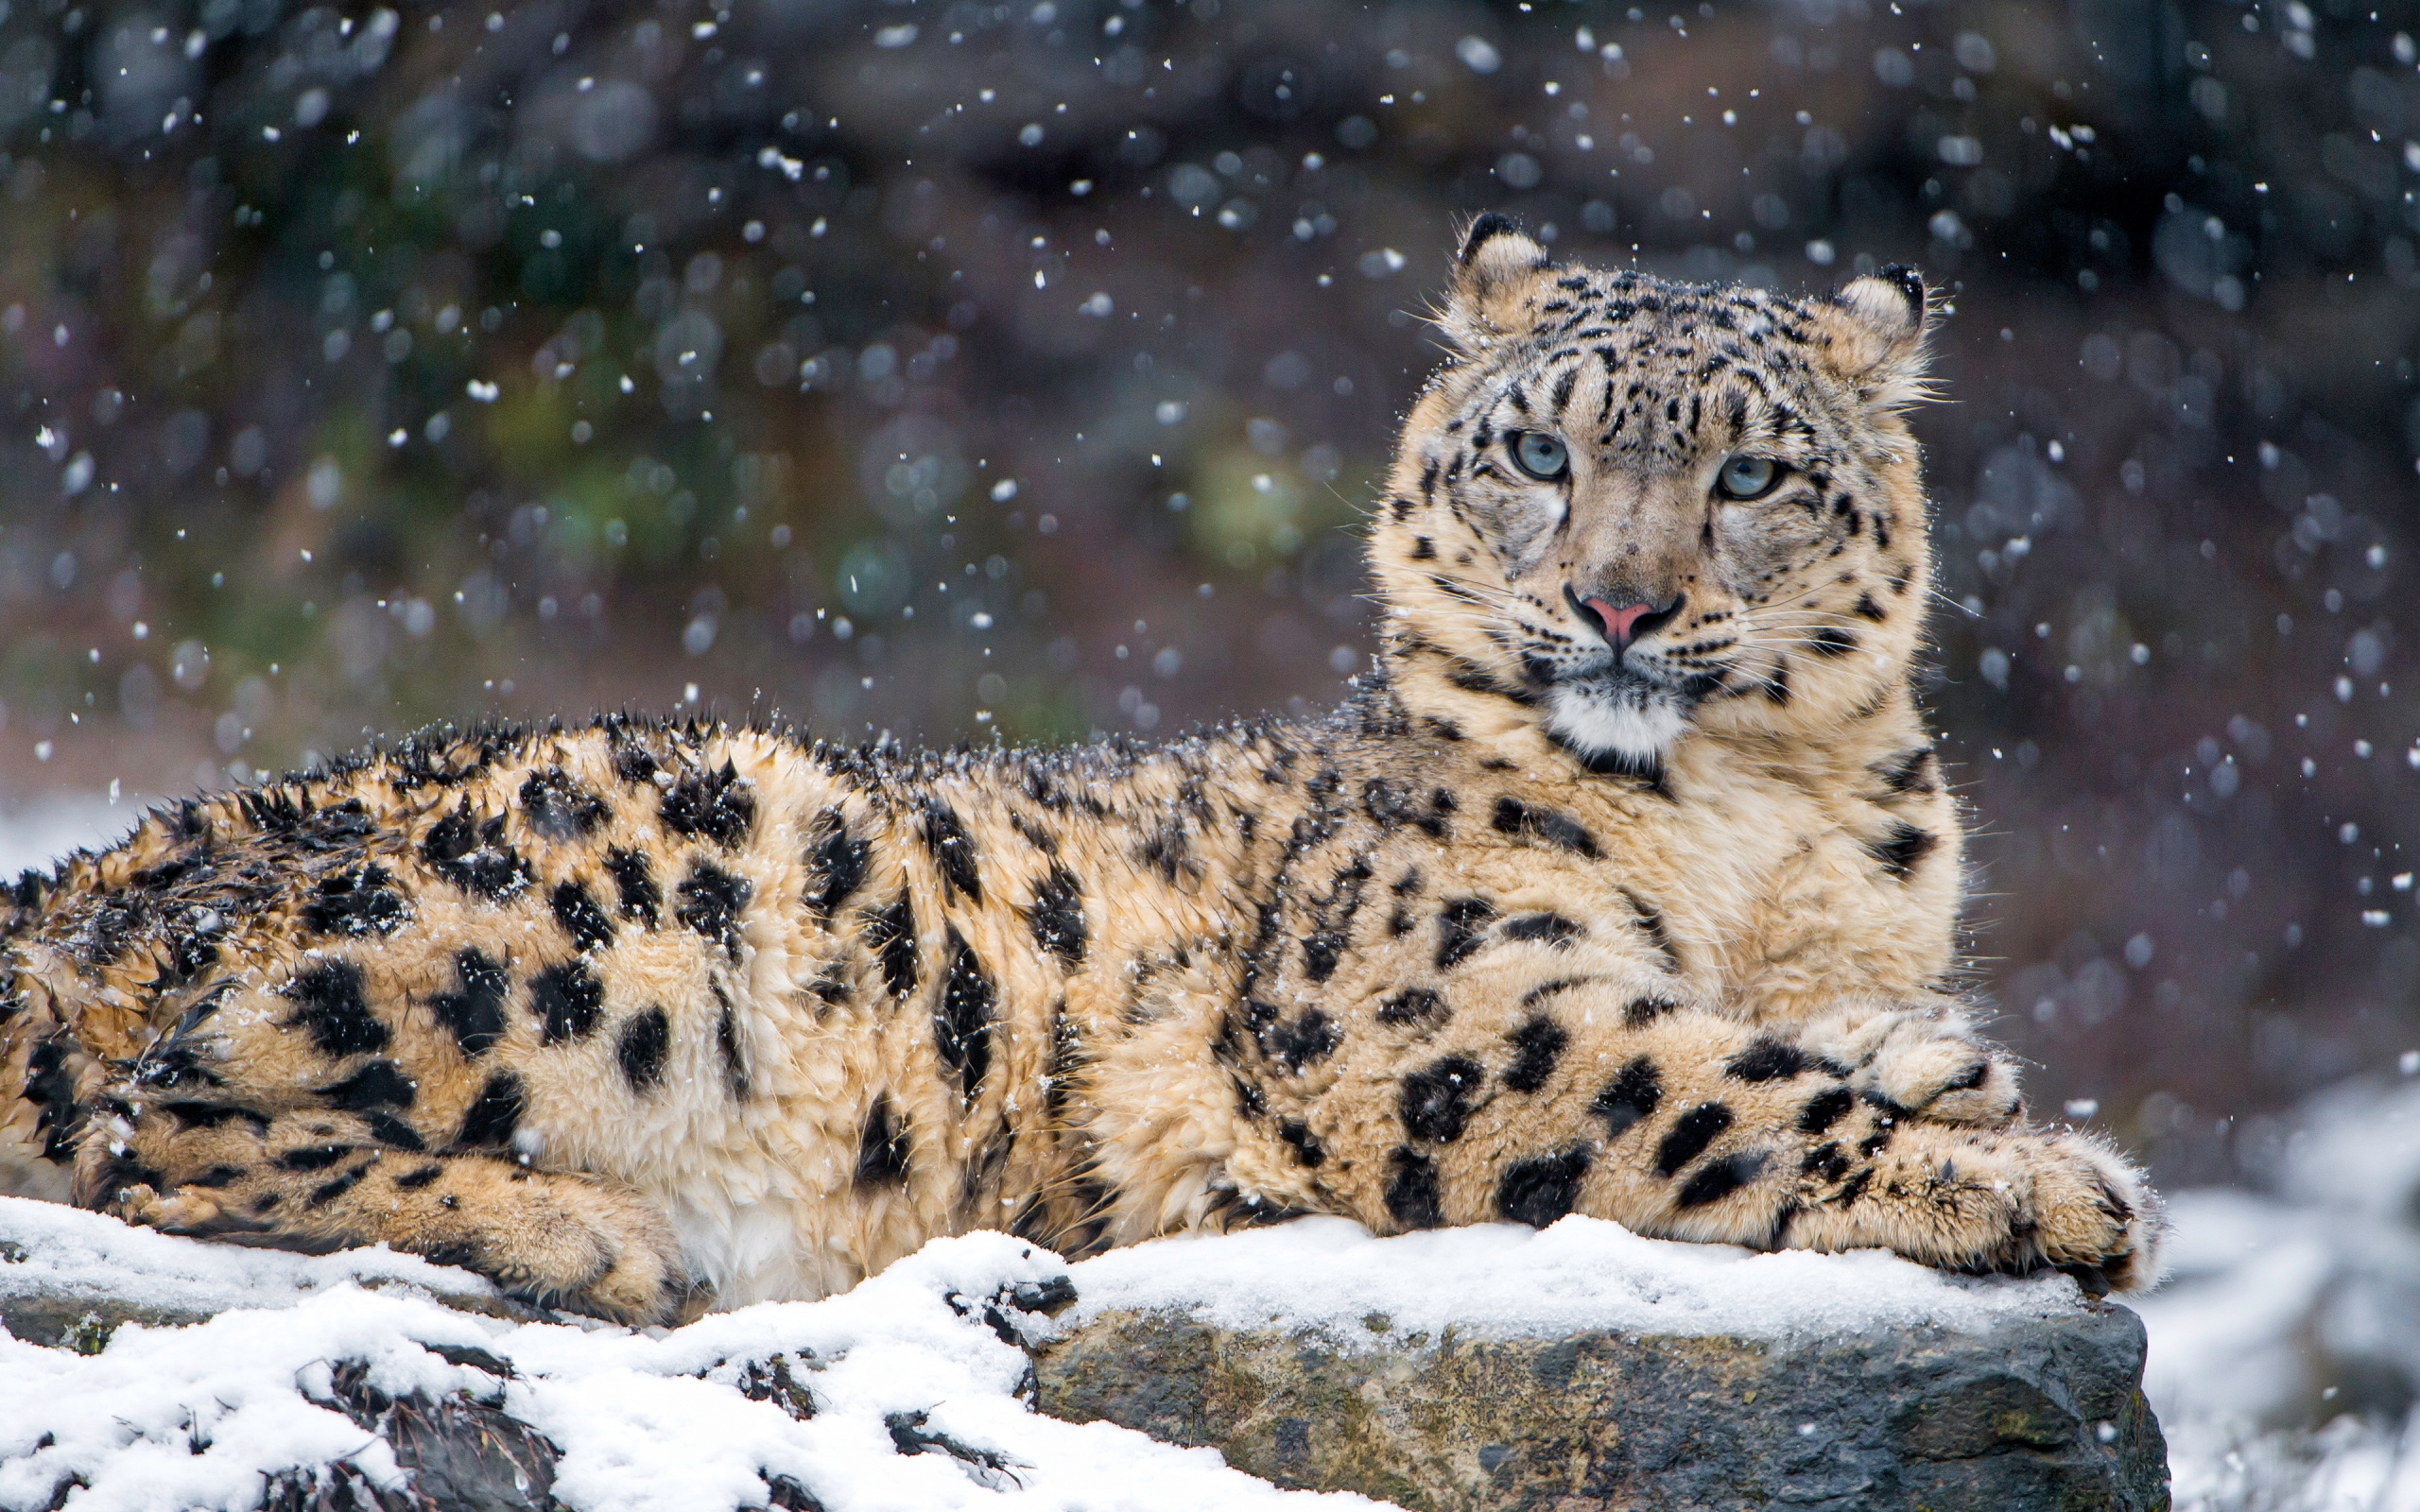 Snow Leopard 4K Wallpapers In Jpg Format For Free Download